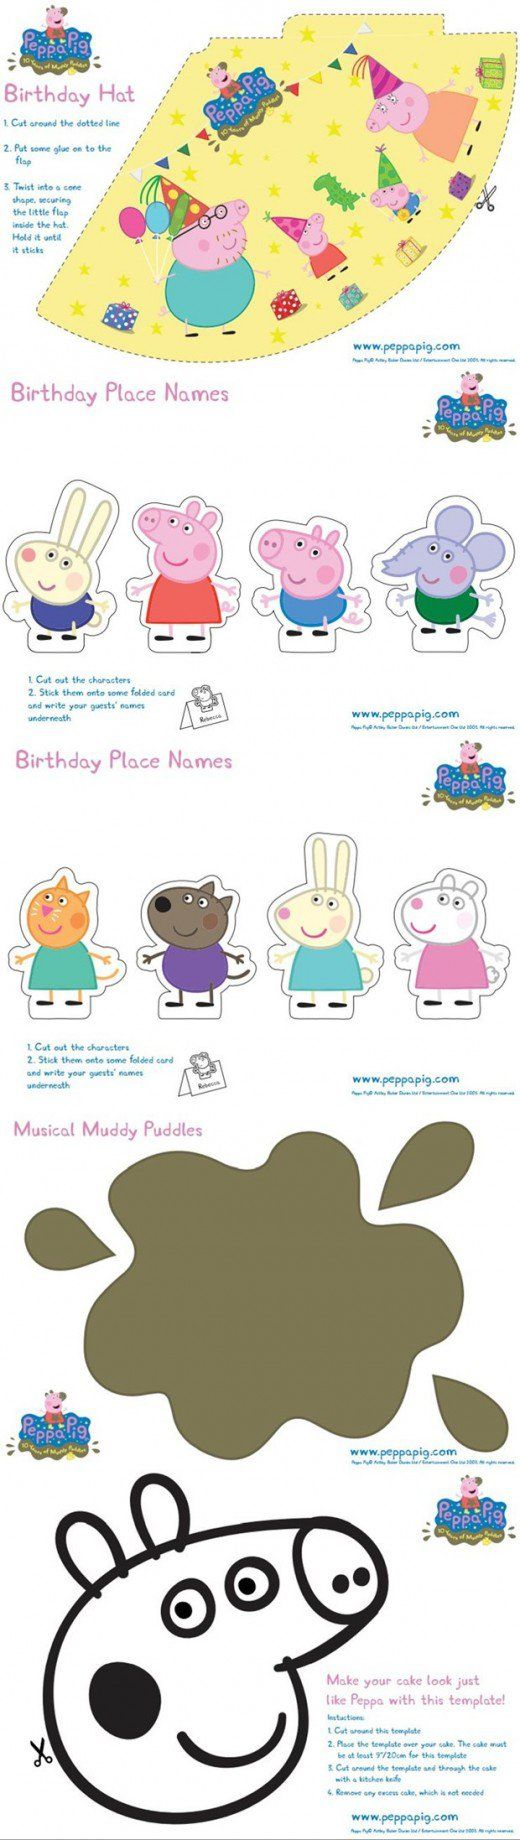 Pe peppa pig online coloring pages - Peppa Pig Party Ideas Diy For Parties